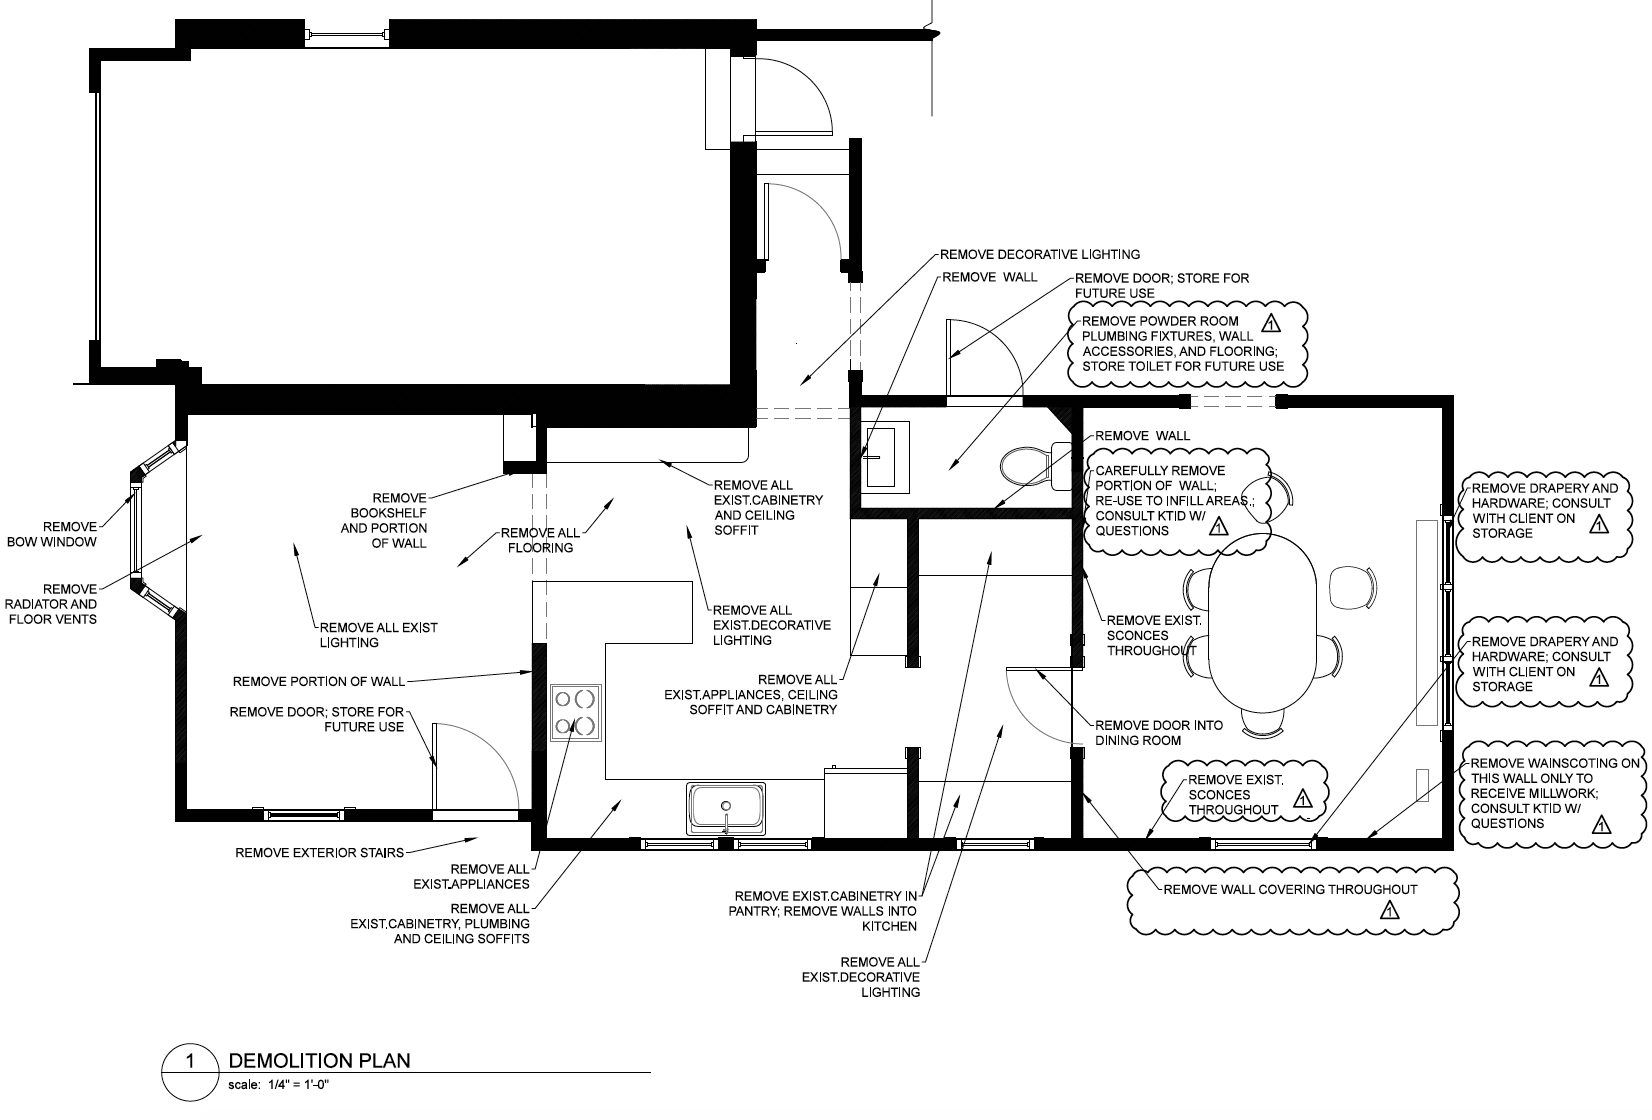 The demolition plan above shows the existing layout—a choppy rabbit warren of rooms that creates isolated spaces.